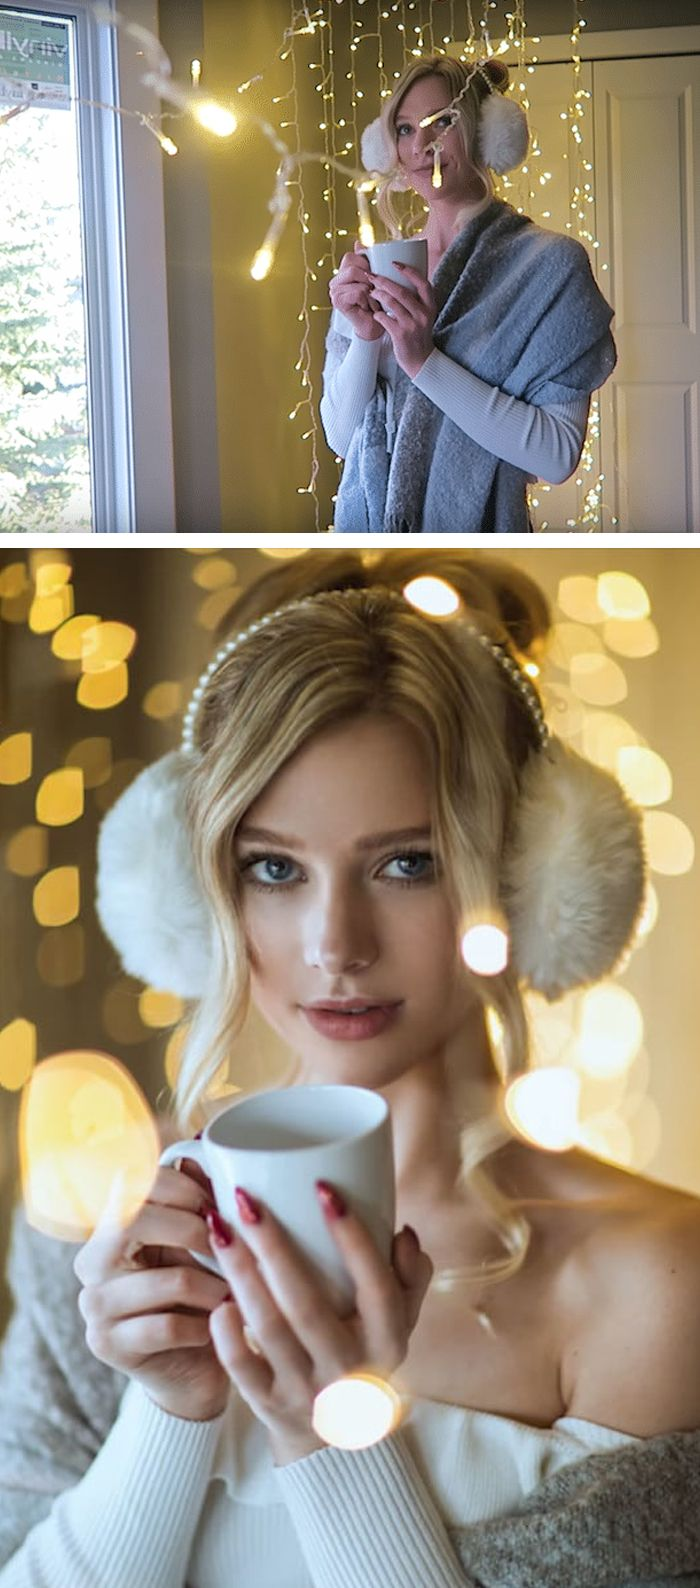 Photographer Irene Rudnyk used a simple strand of Christmas lights to create a wintery lighting effect in her portrait shoot.